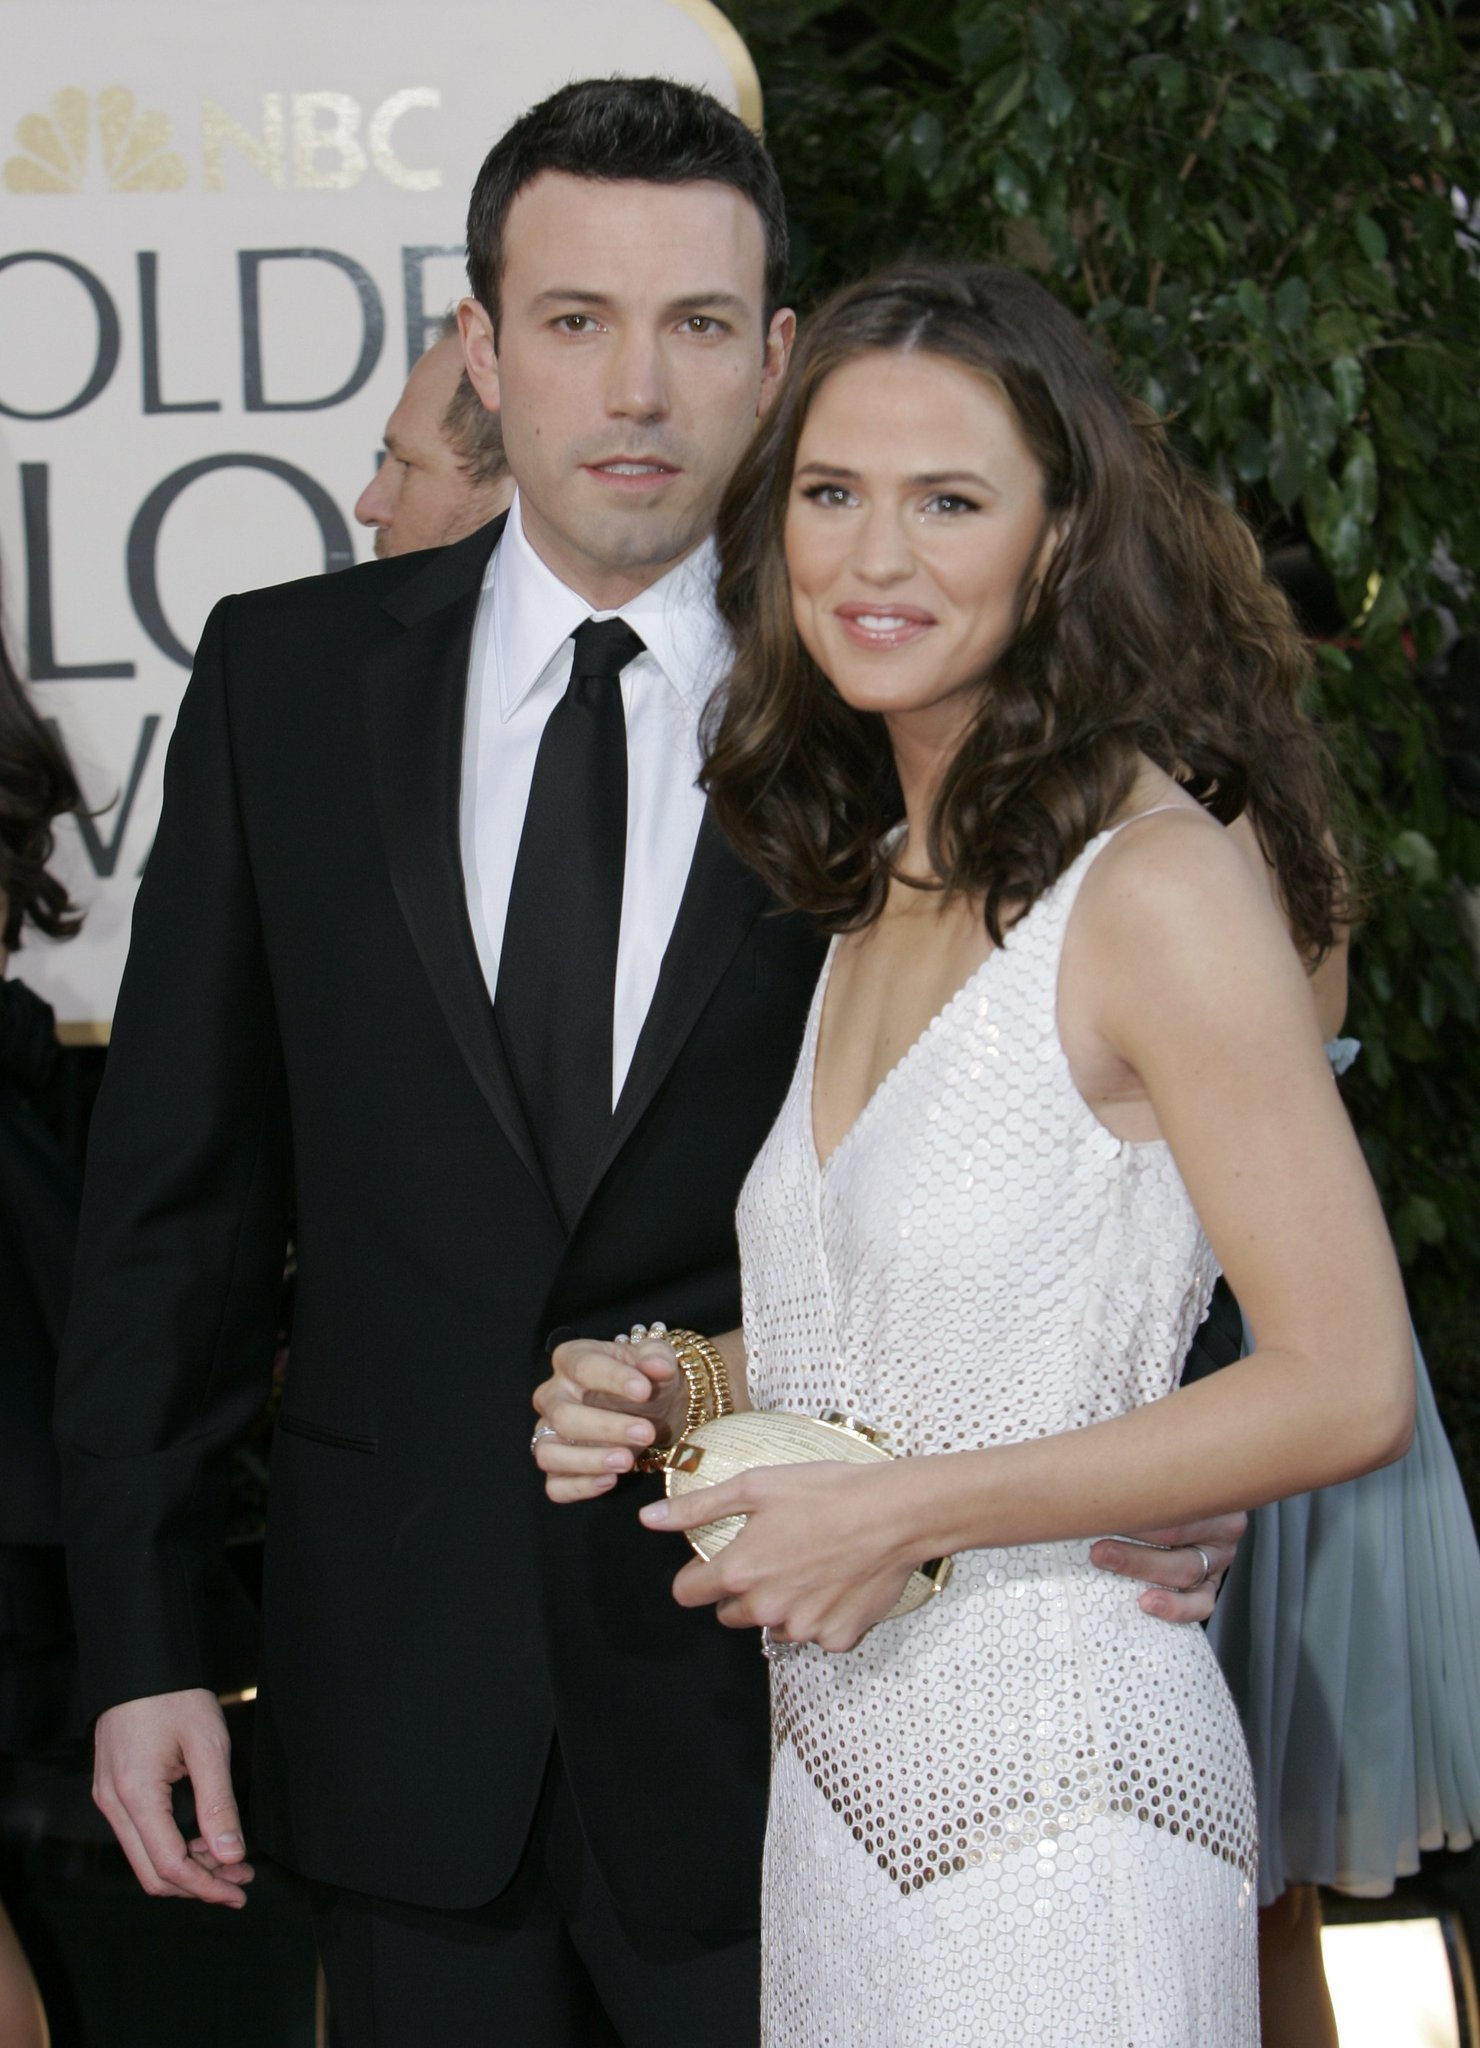 Jennifer Garner, Ben Affleck split - Chicago Tribune